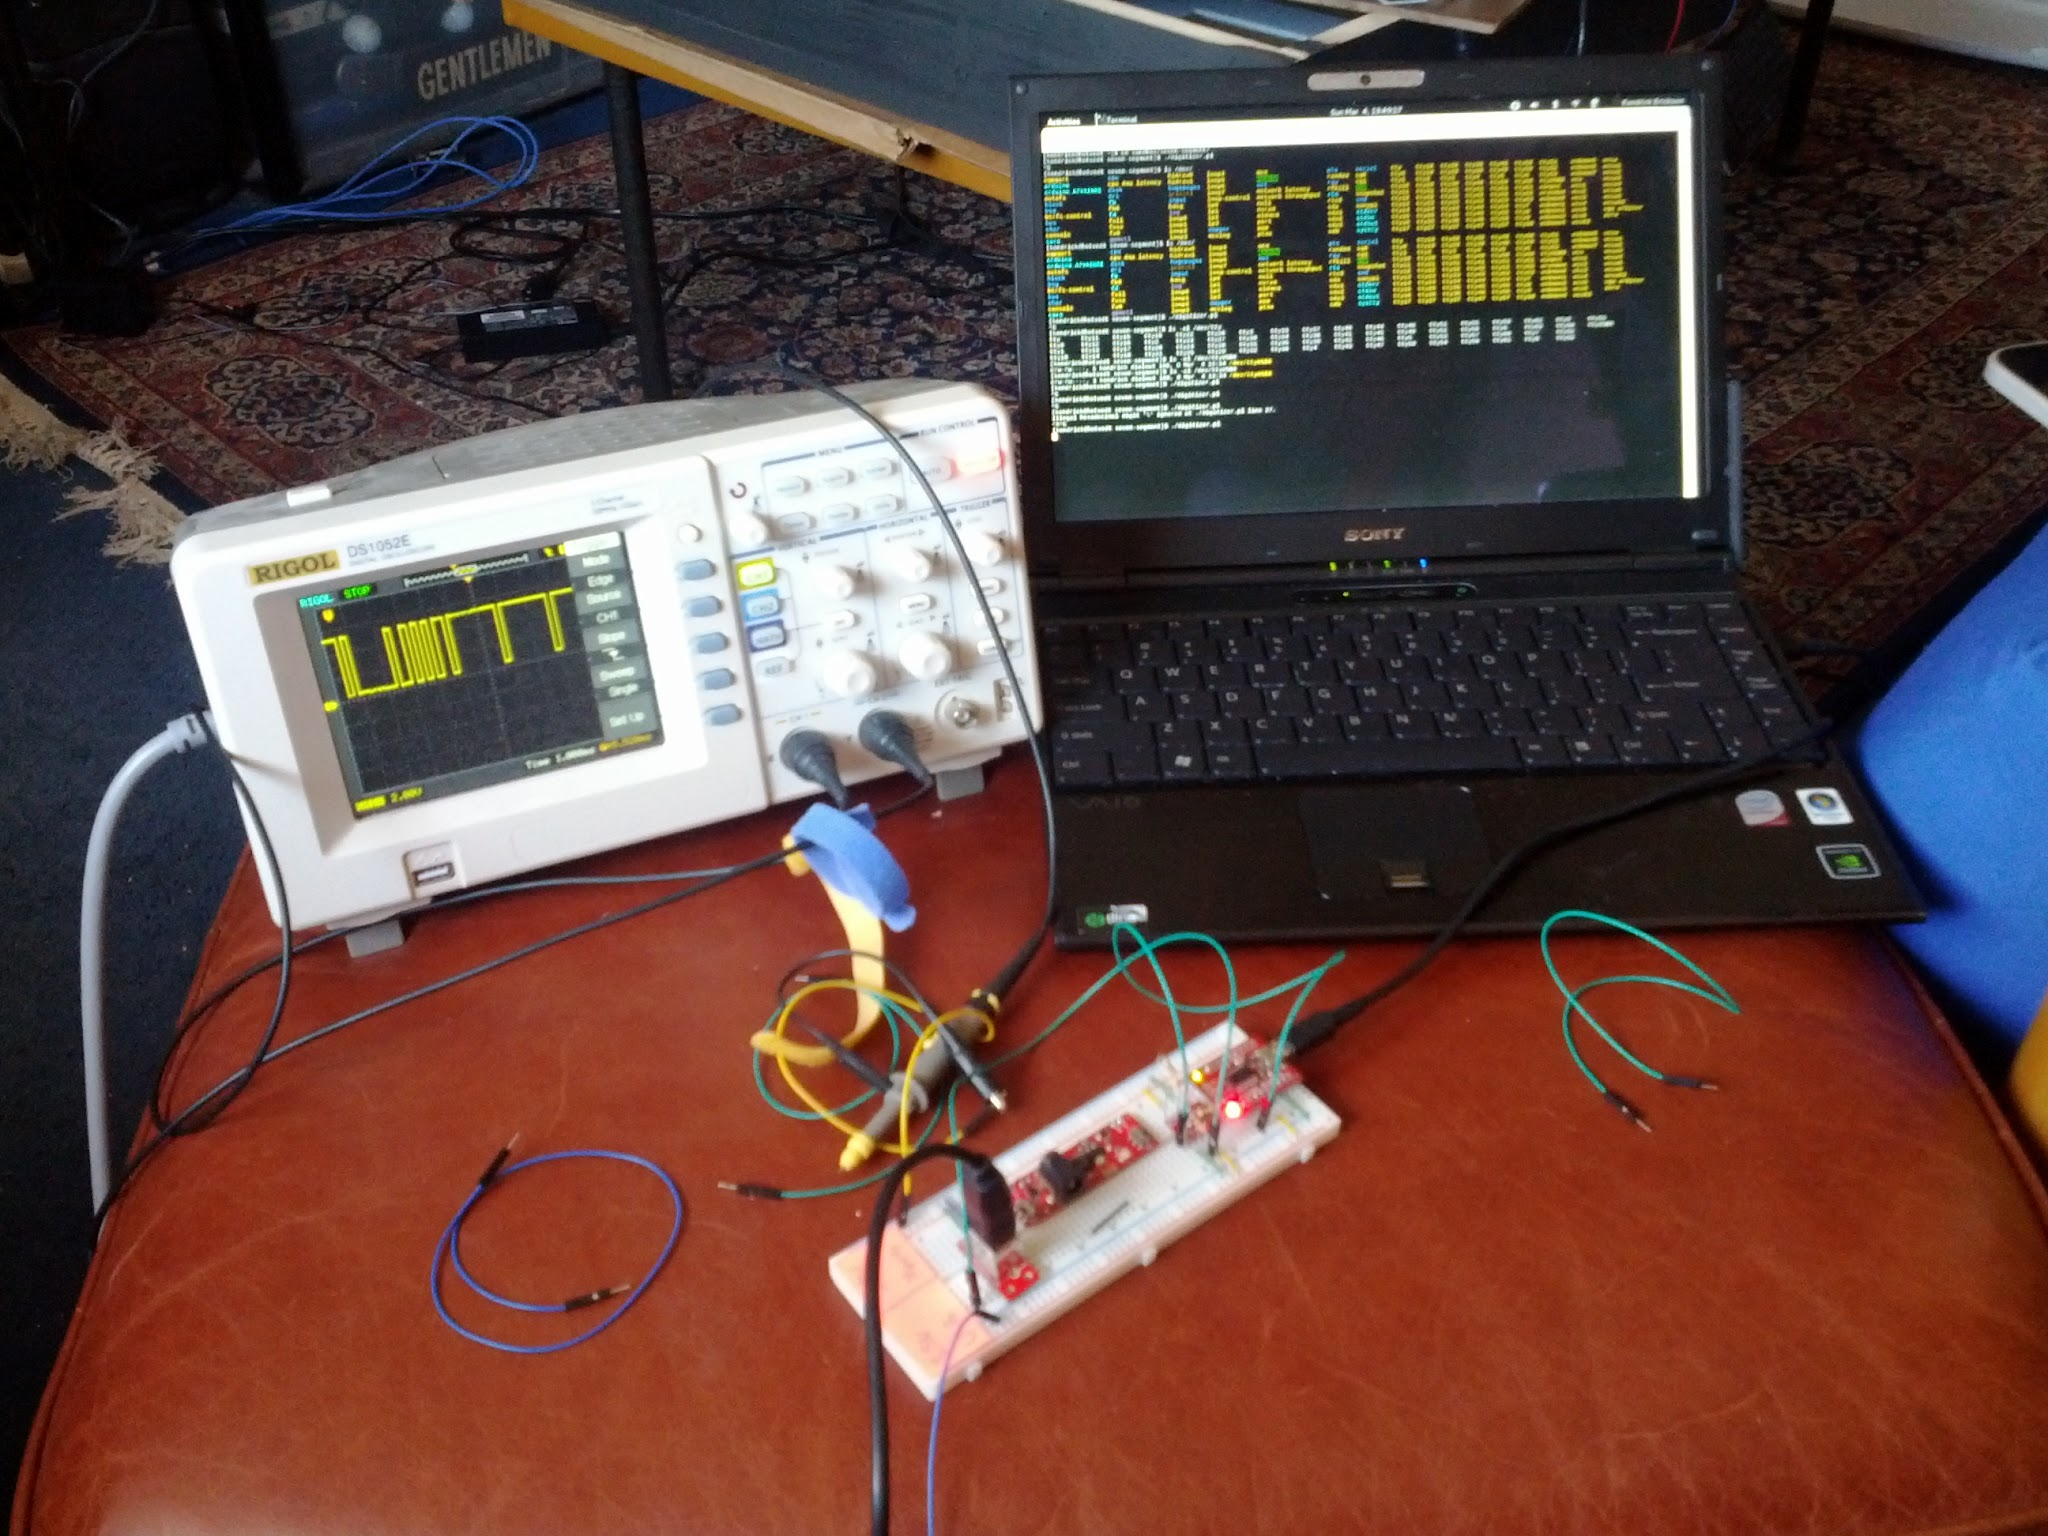 Here's the laptop next to my oscilloscope working on my large seven-segment display project.